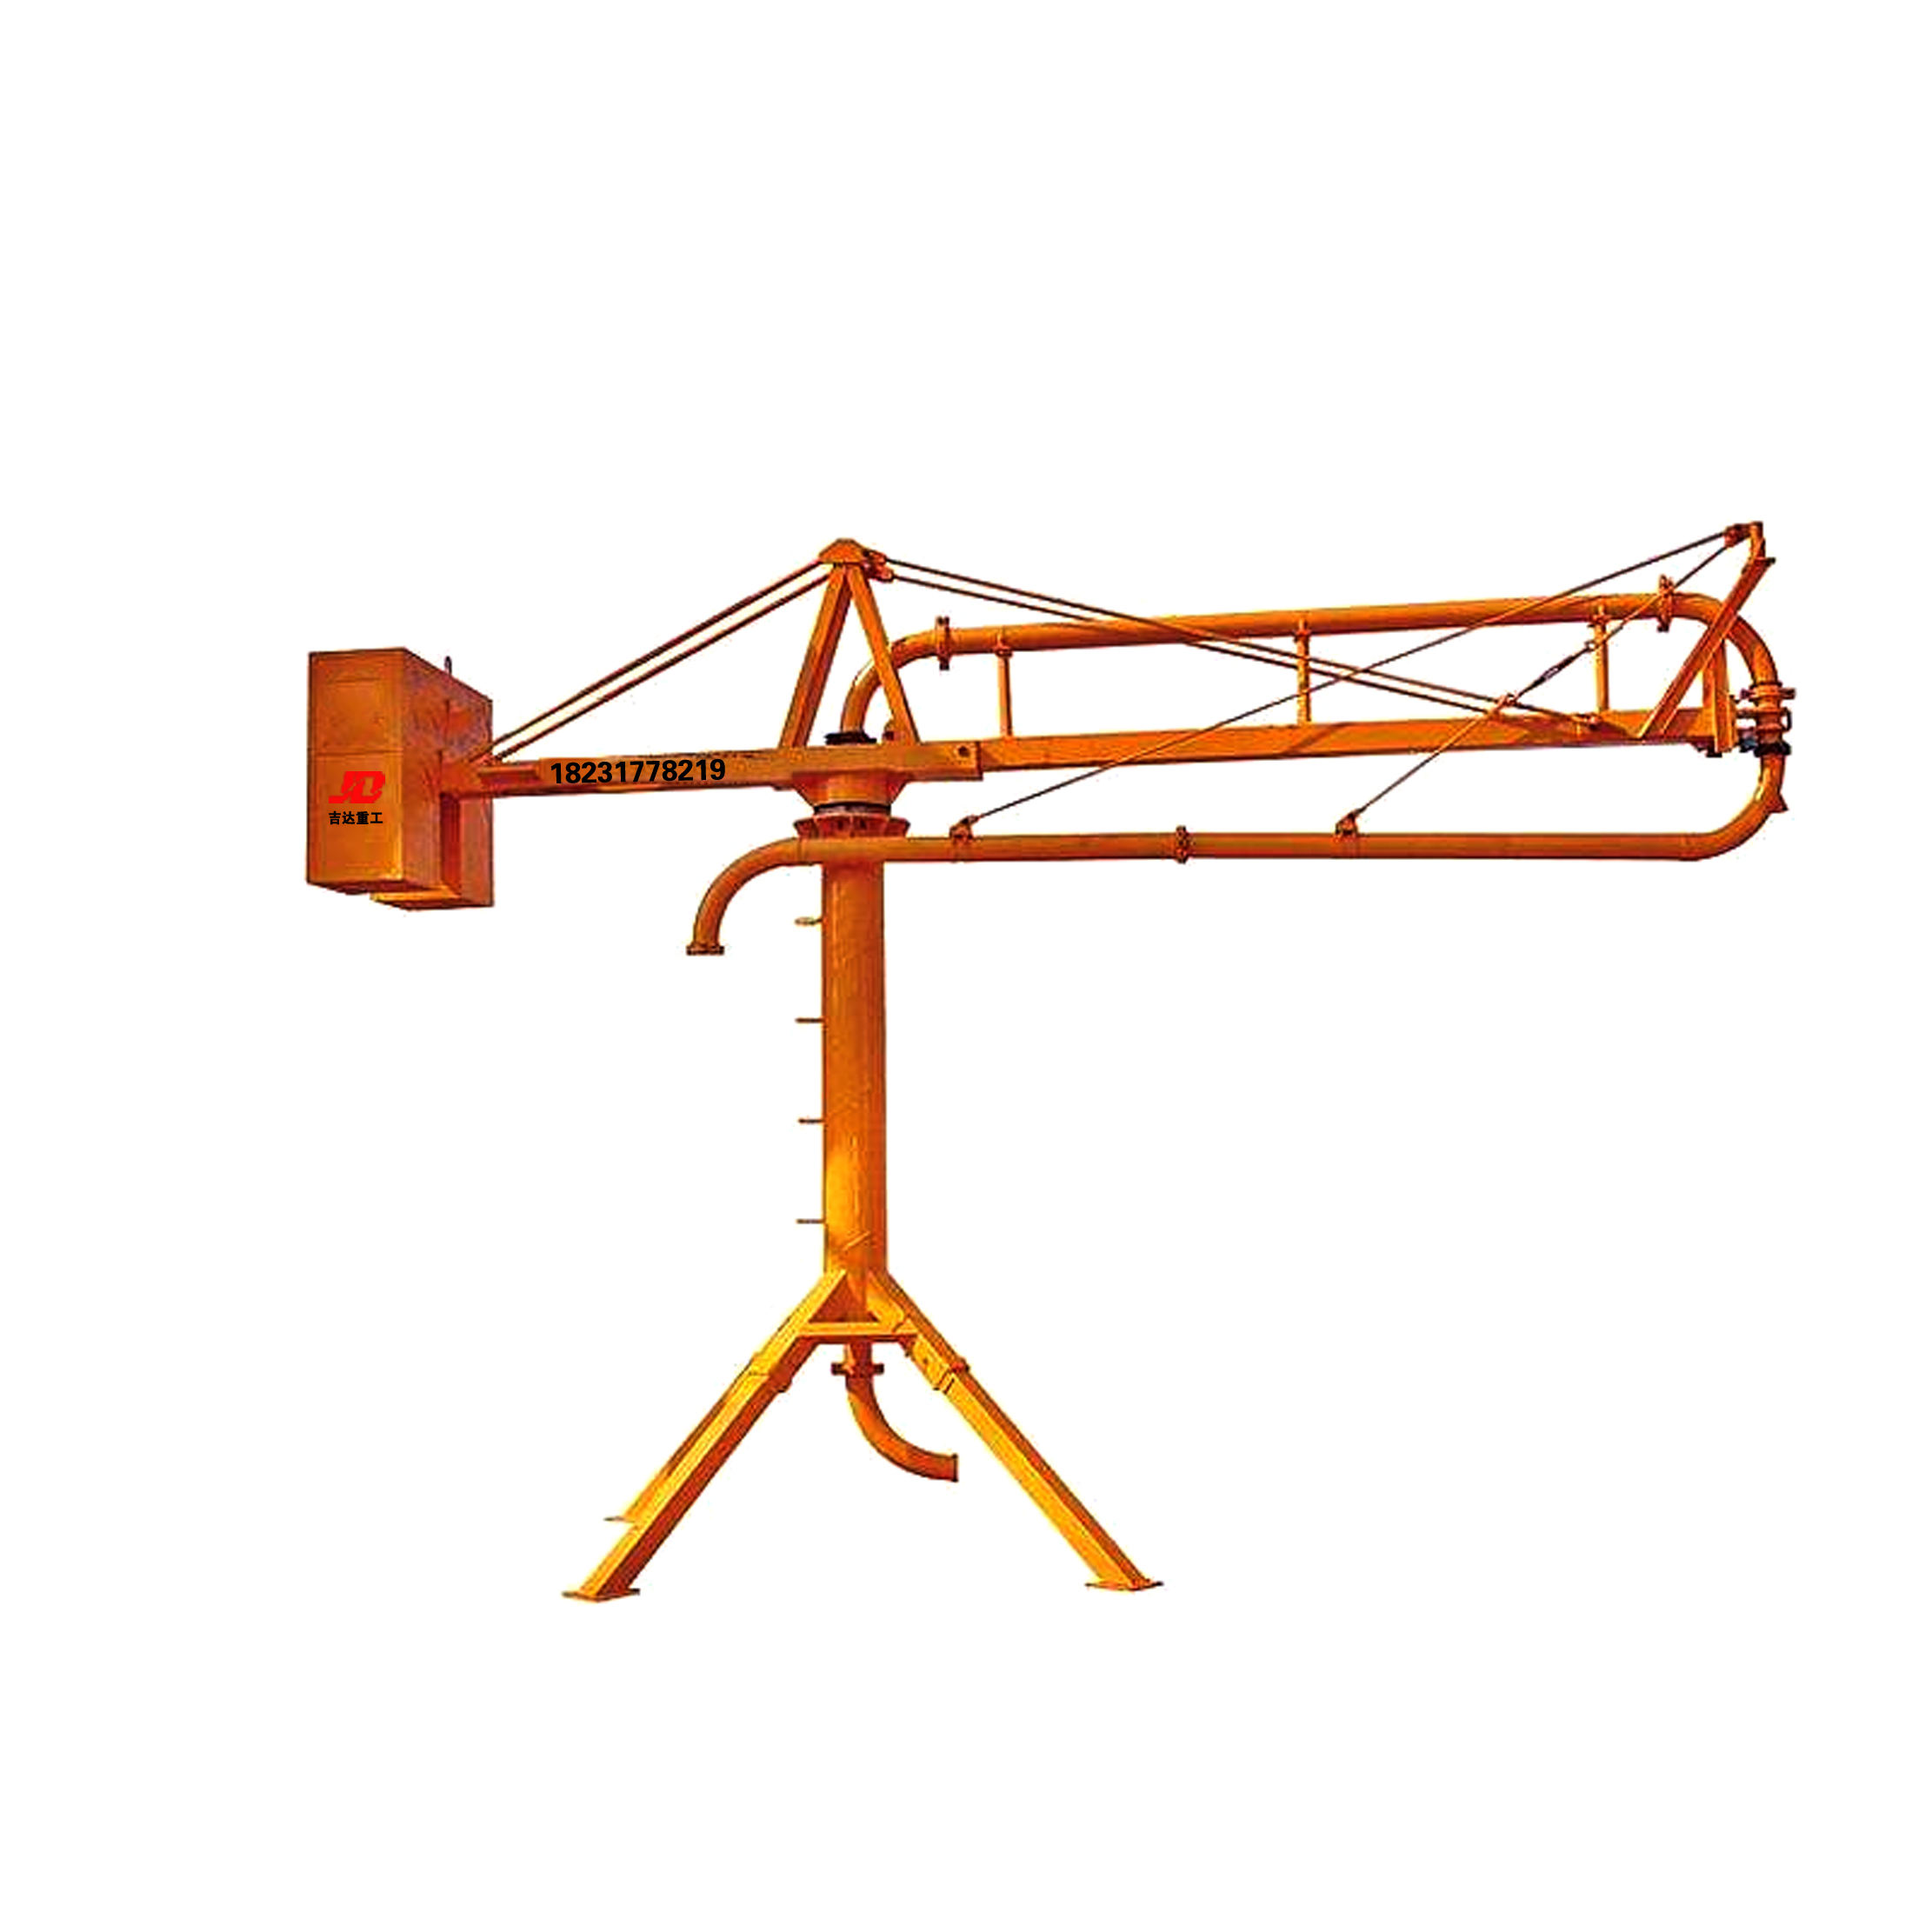 China manufacturer Light and cheap Construction machinery 12M 15M 18M Manual concrete placing boom/concrete spreader